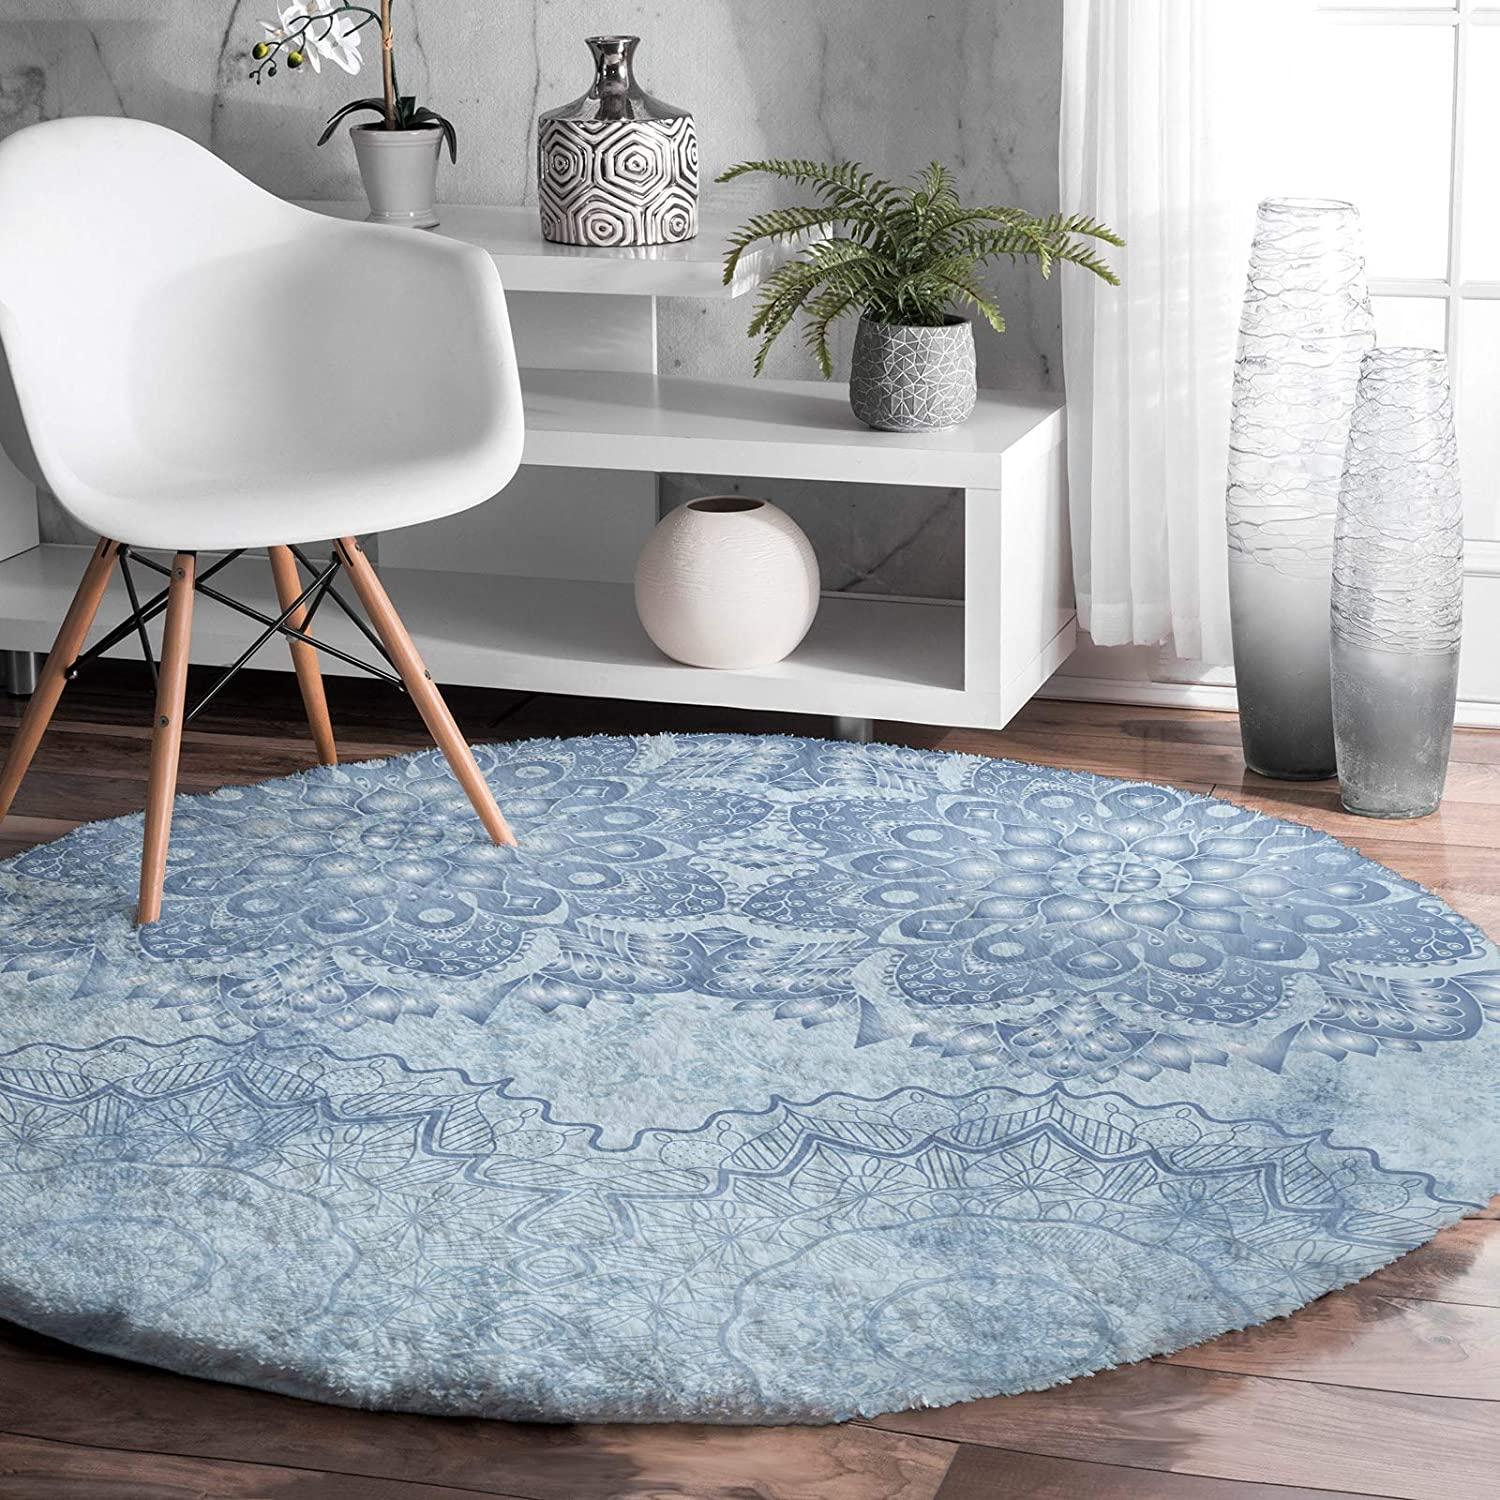 Prime 40% OFF Cheap Sale Leader Round Rug for Bedroom Flower Mandala Louisville-Jefferson County Mall F Blue Vintage